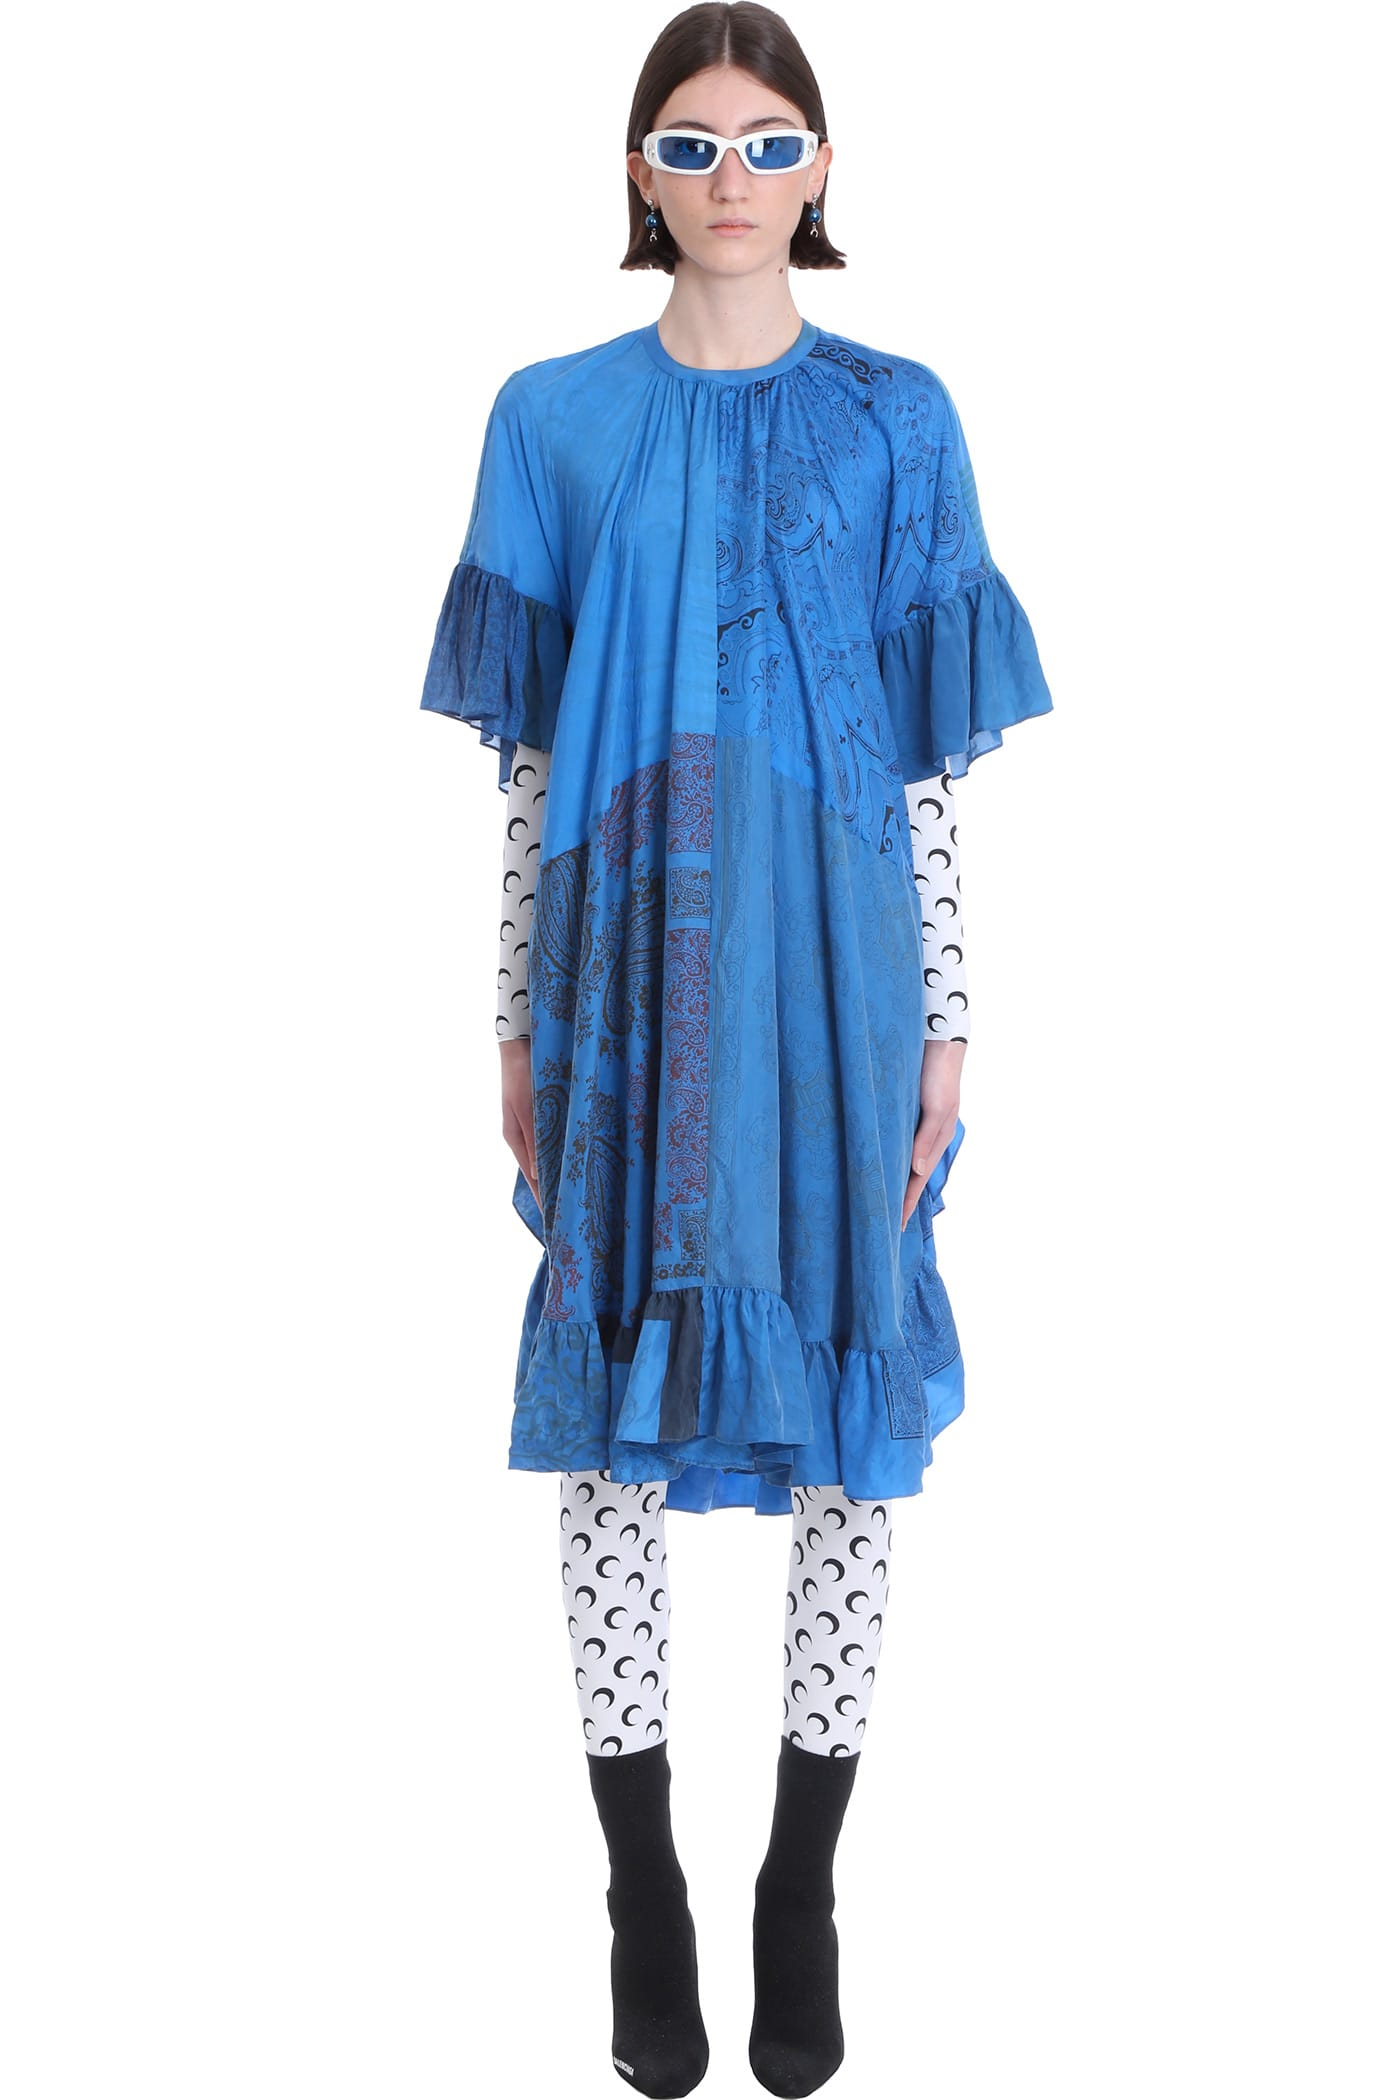 Buy Marine Serre Silk Scarves A-line Gathered Dress Dress In Blue Silk online, shop Marine Serre with free shipping